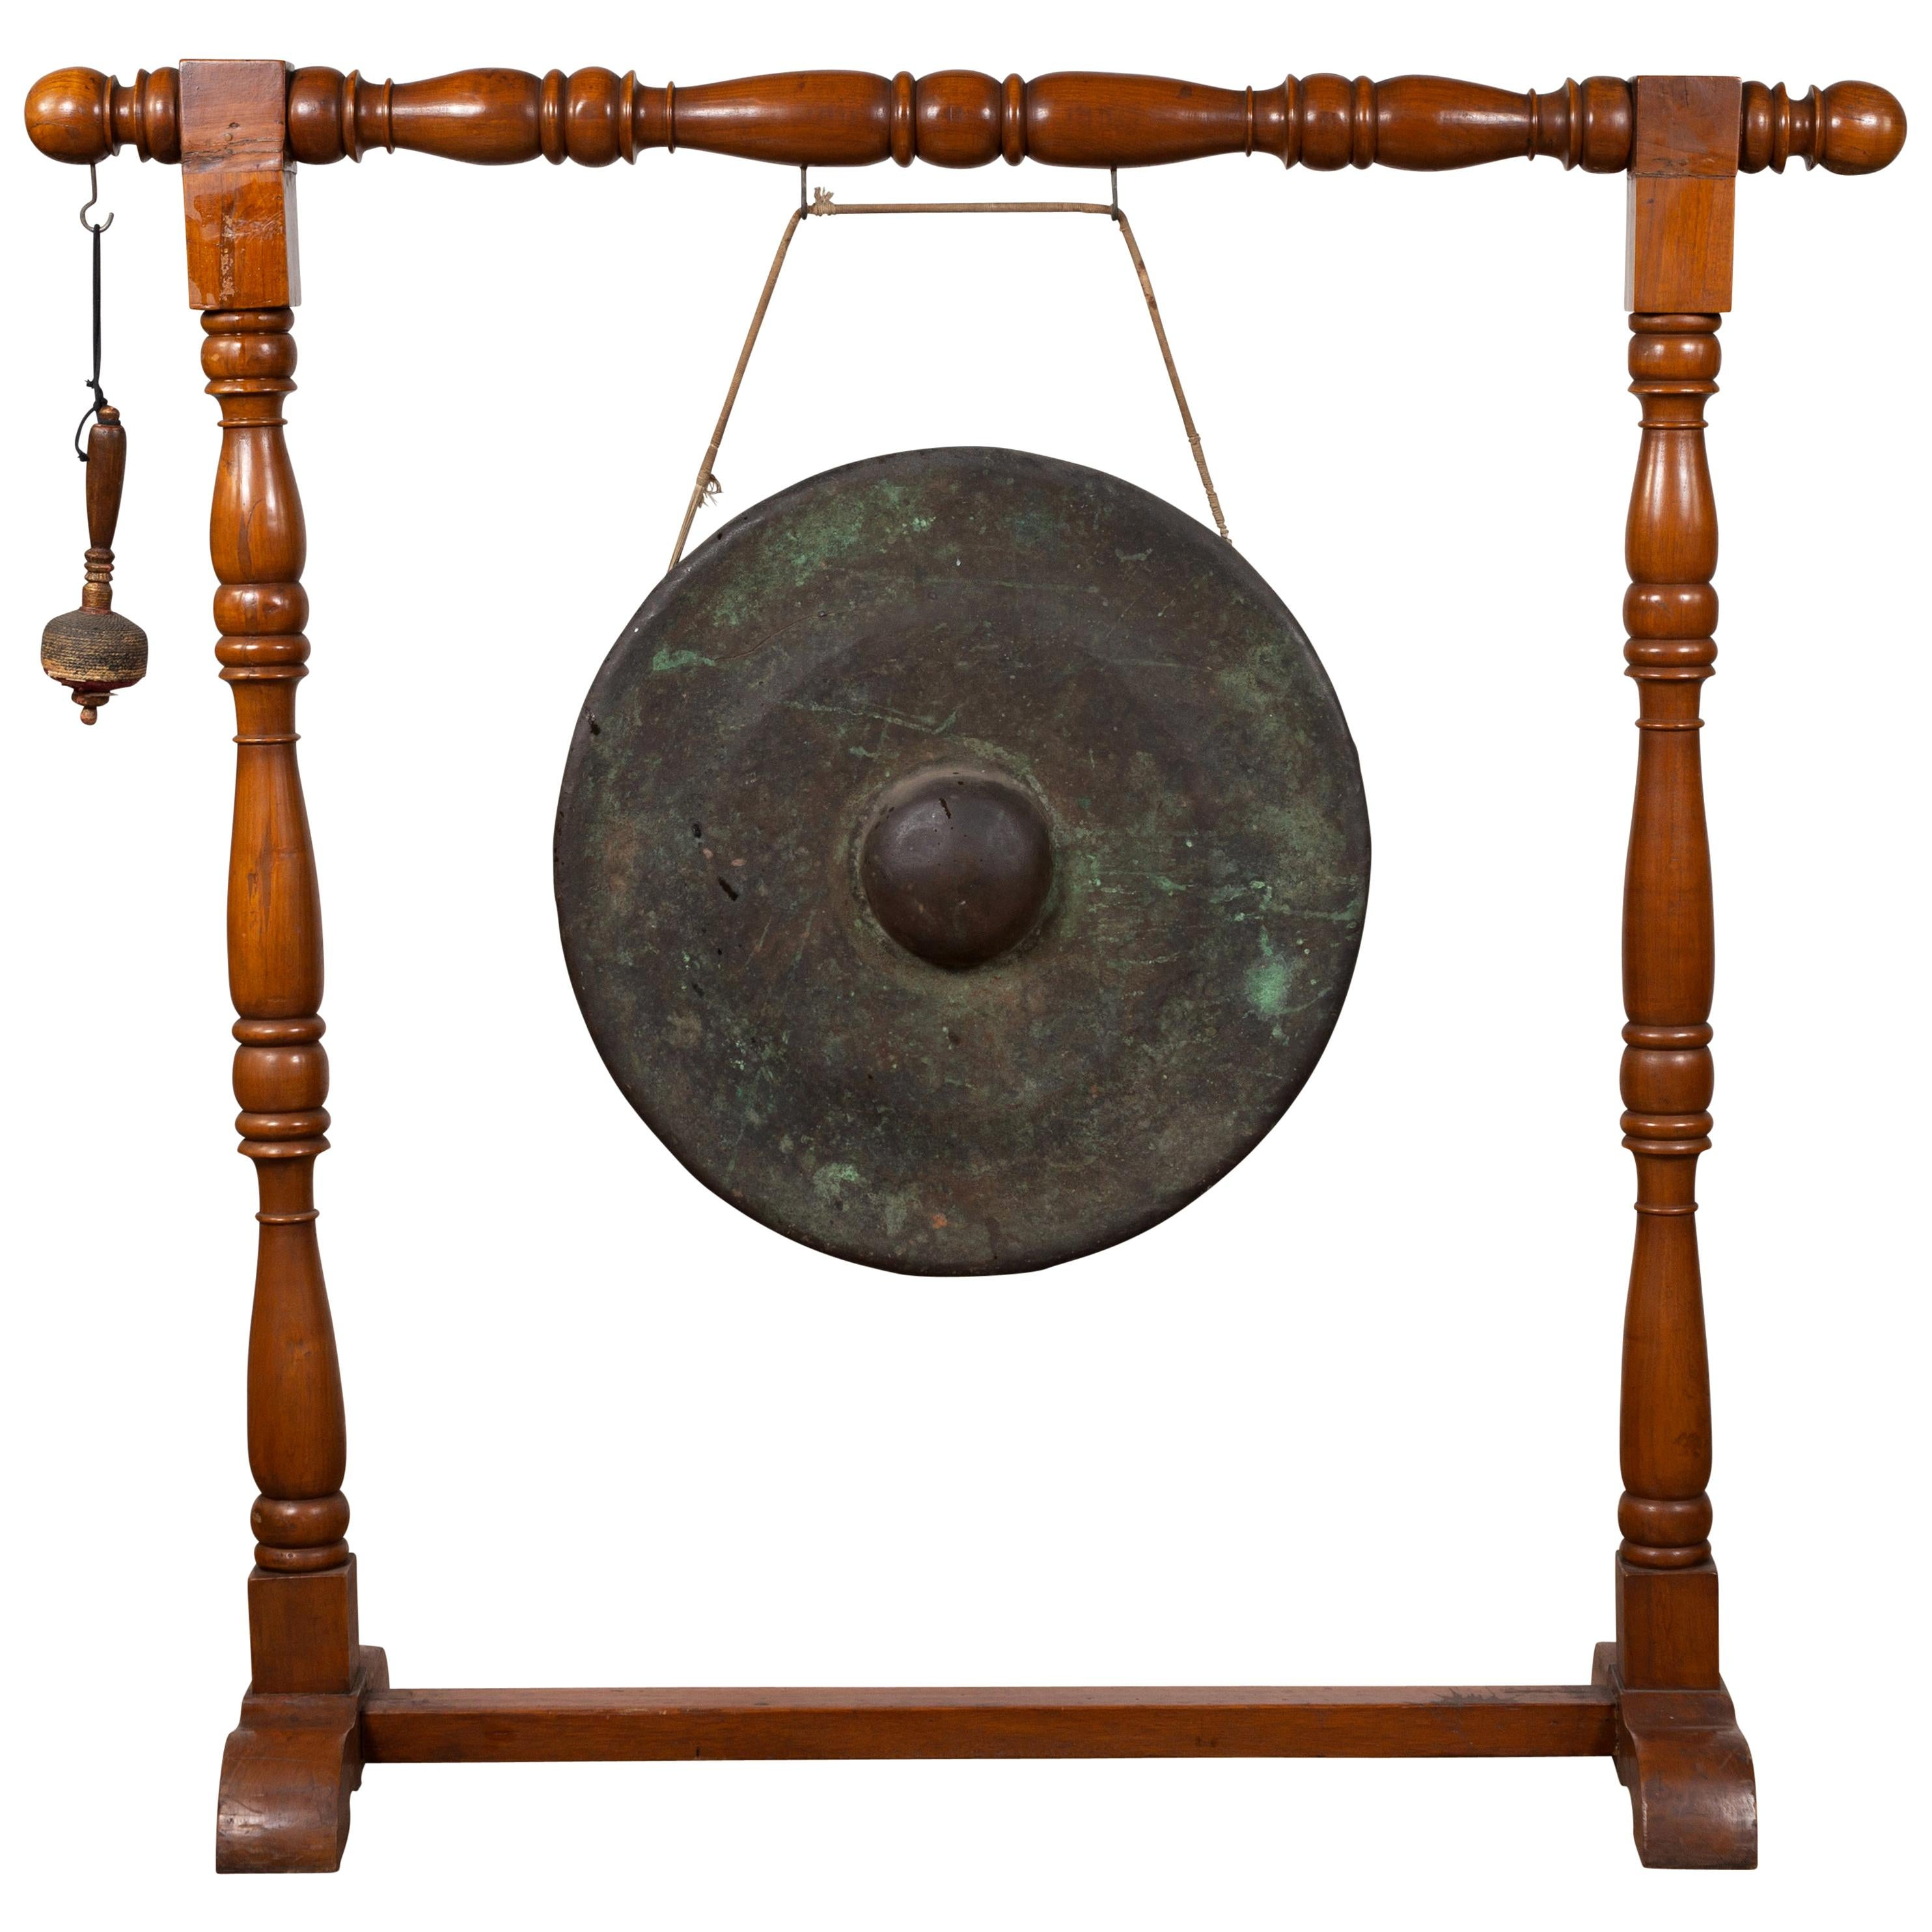 Antique Burmese Bronze Temple Gong with Mallet Mounted on Turned Wooden Stand